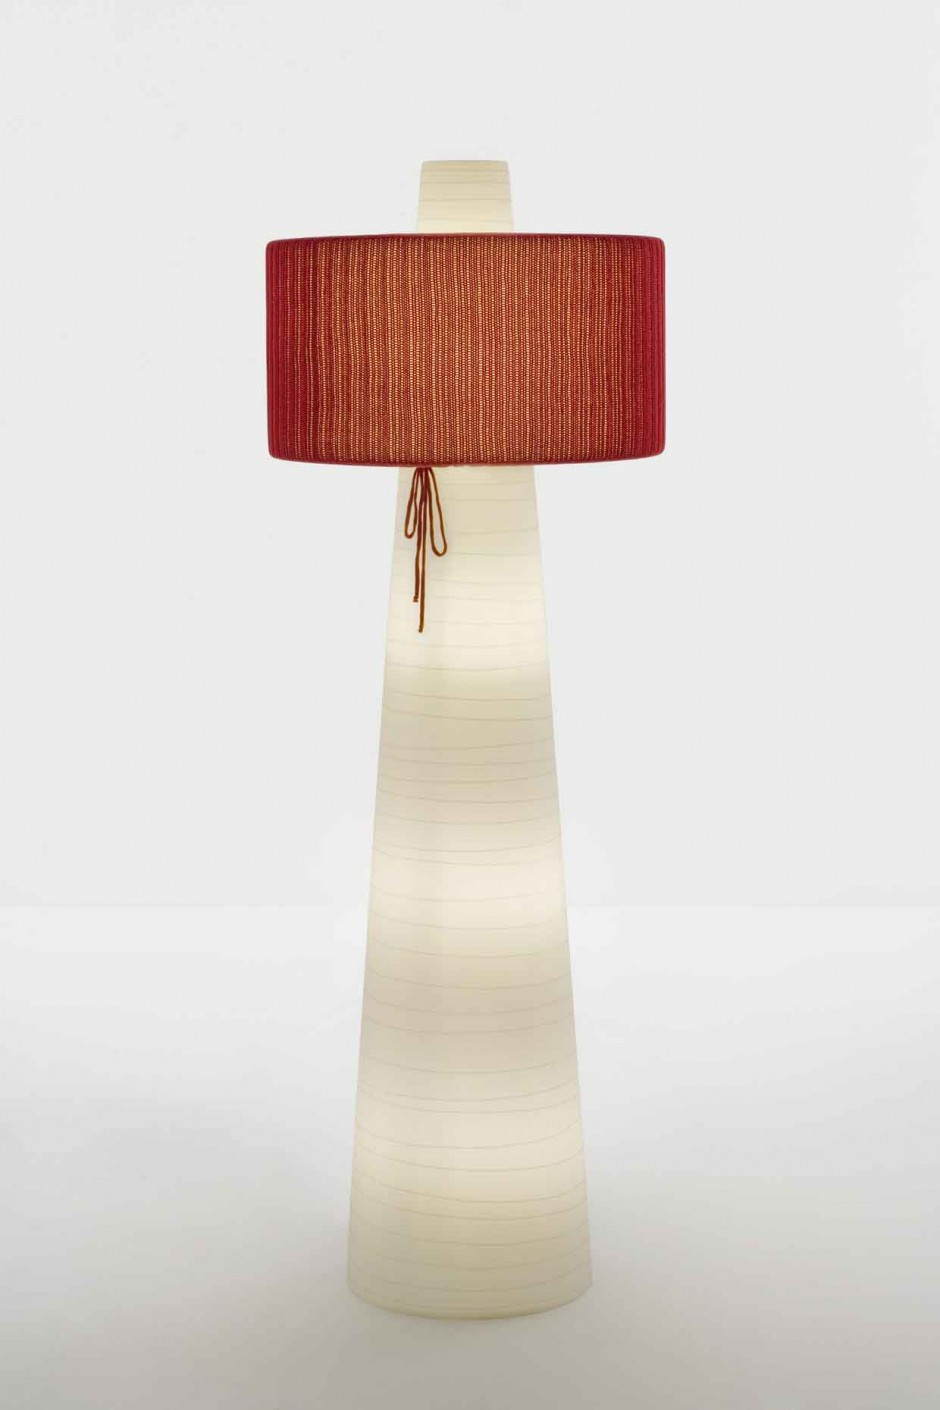 UP-Floor-Lamp-Lamps-Design Creative 10 Ideas for Residential Lighting